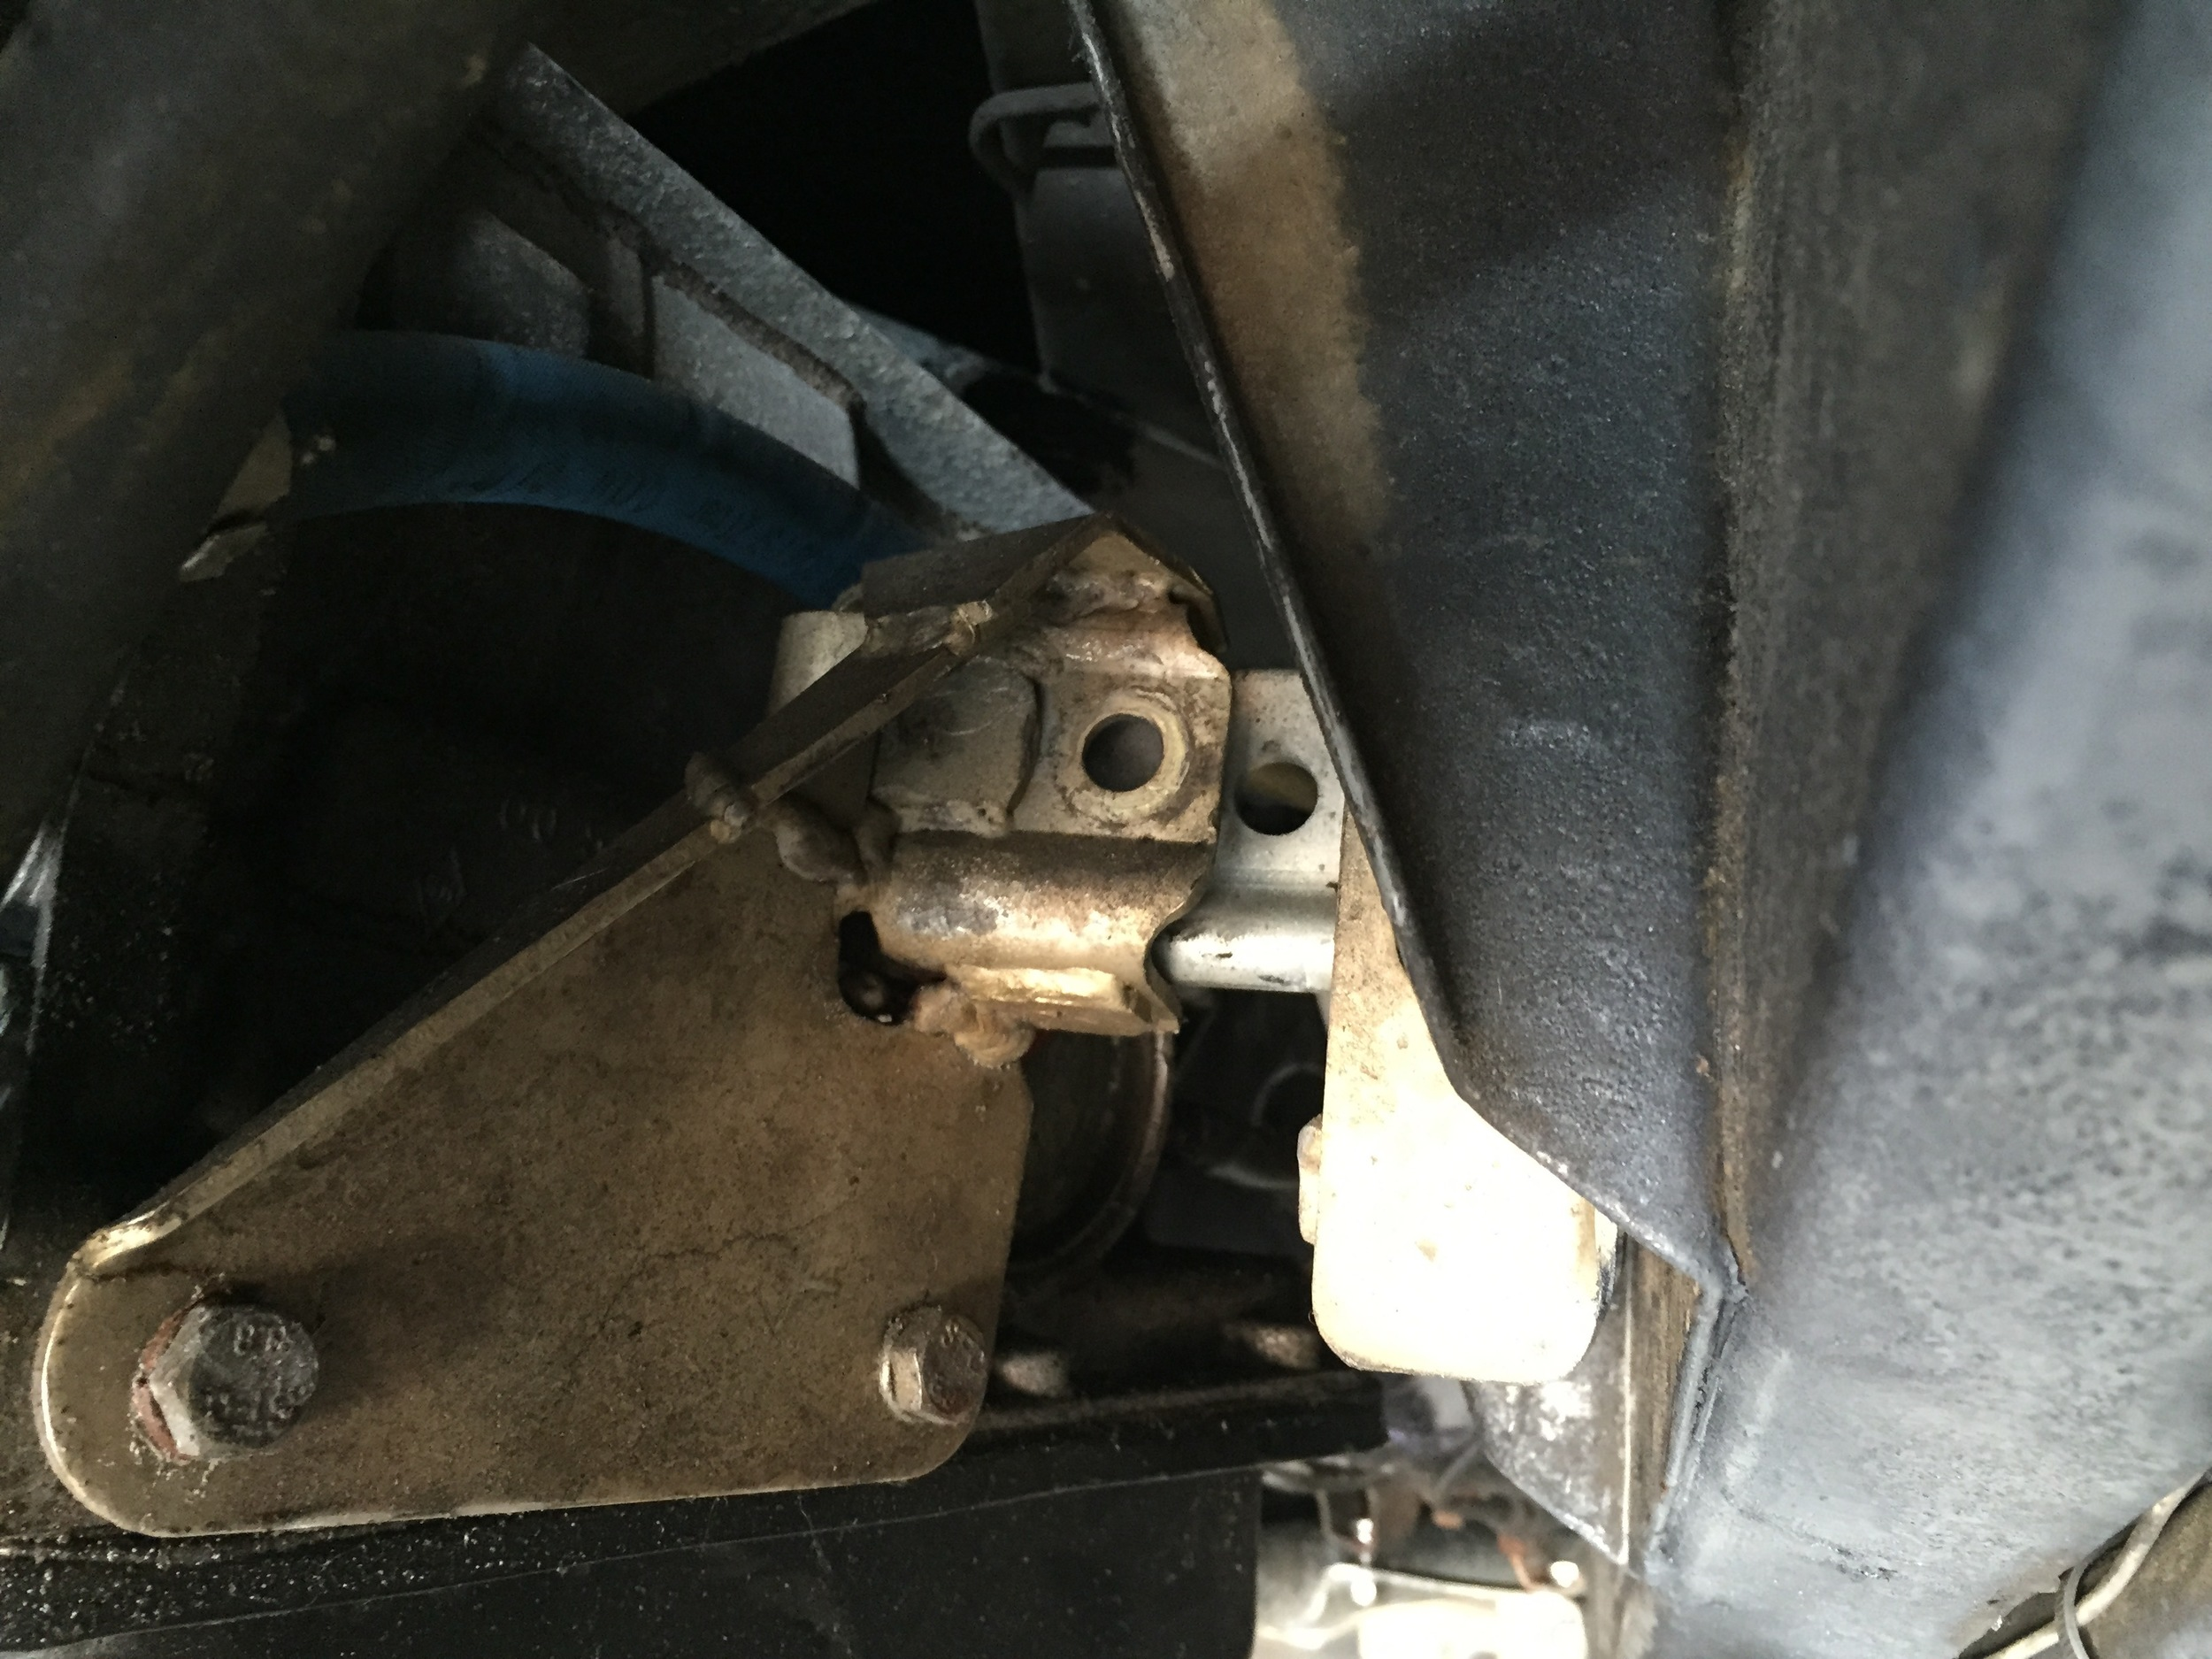 The golden C-like bracket on the transmission mating the mount on the frame behind it. The transmission needs to be shifted a bit to the right so that the holes line up, but otherwise it's in position.